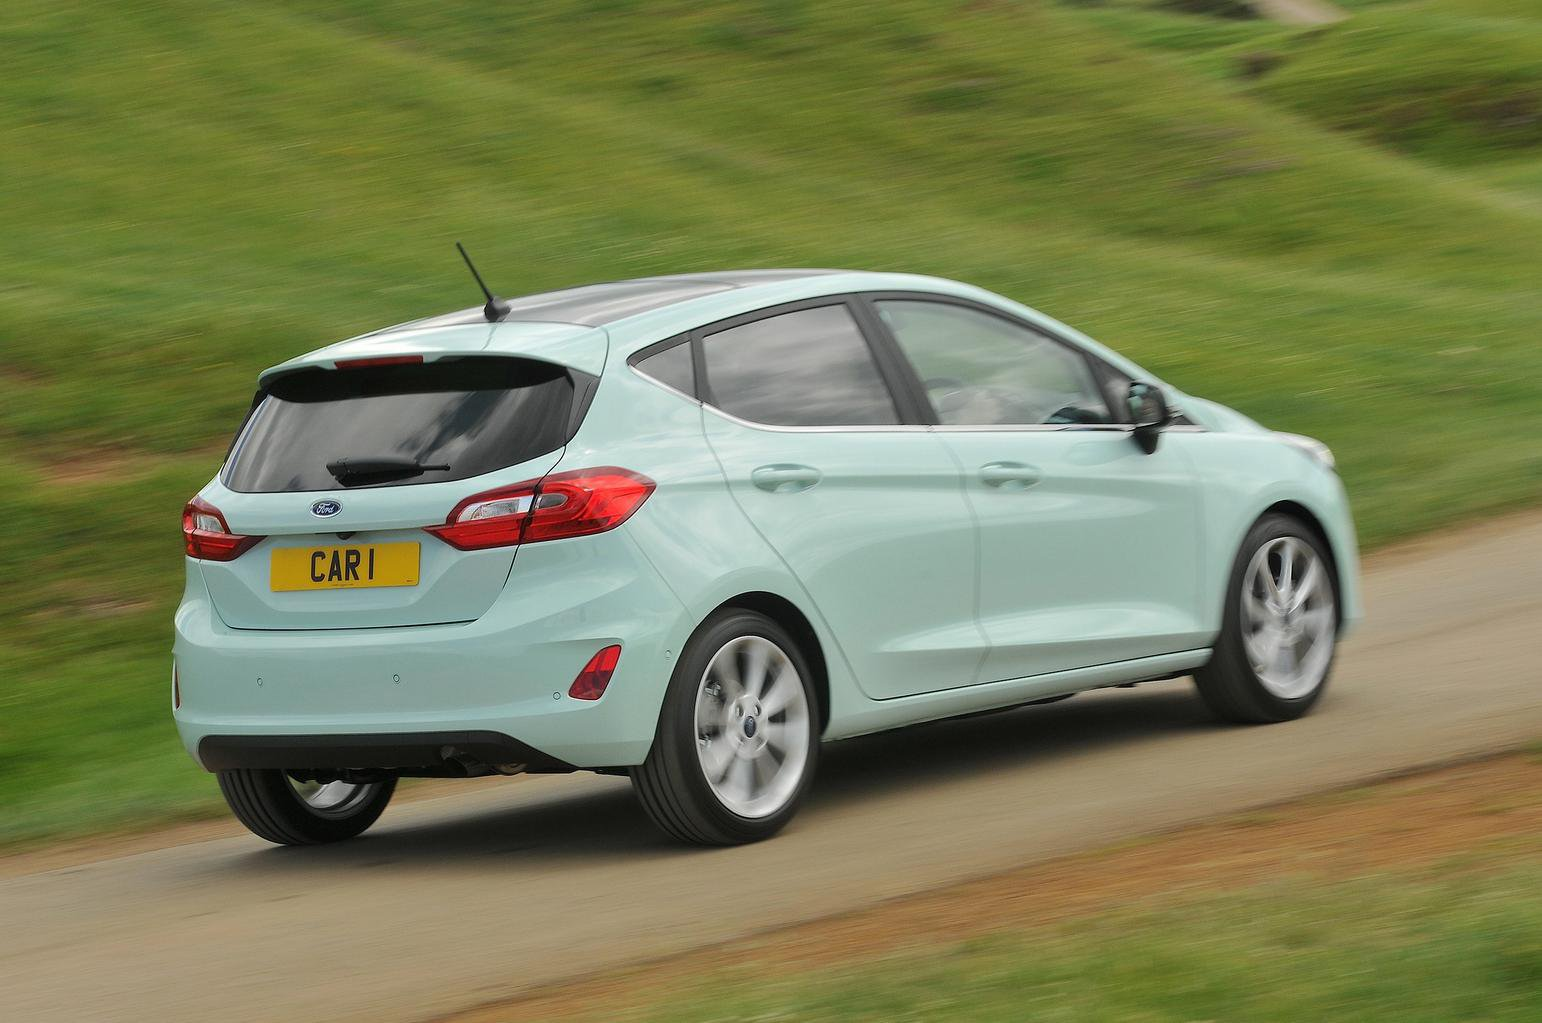 2019 Ford Fiesta rear